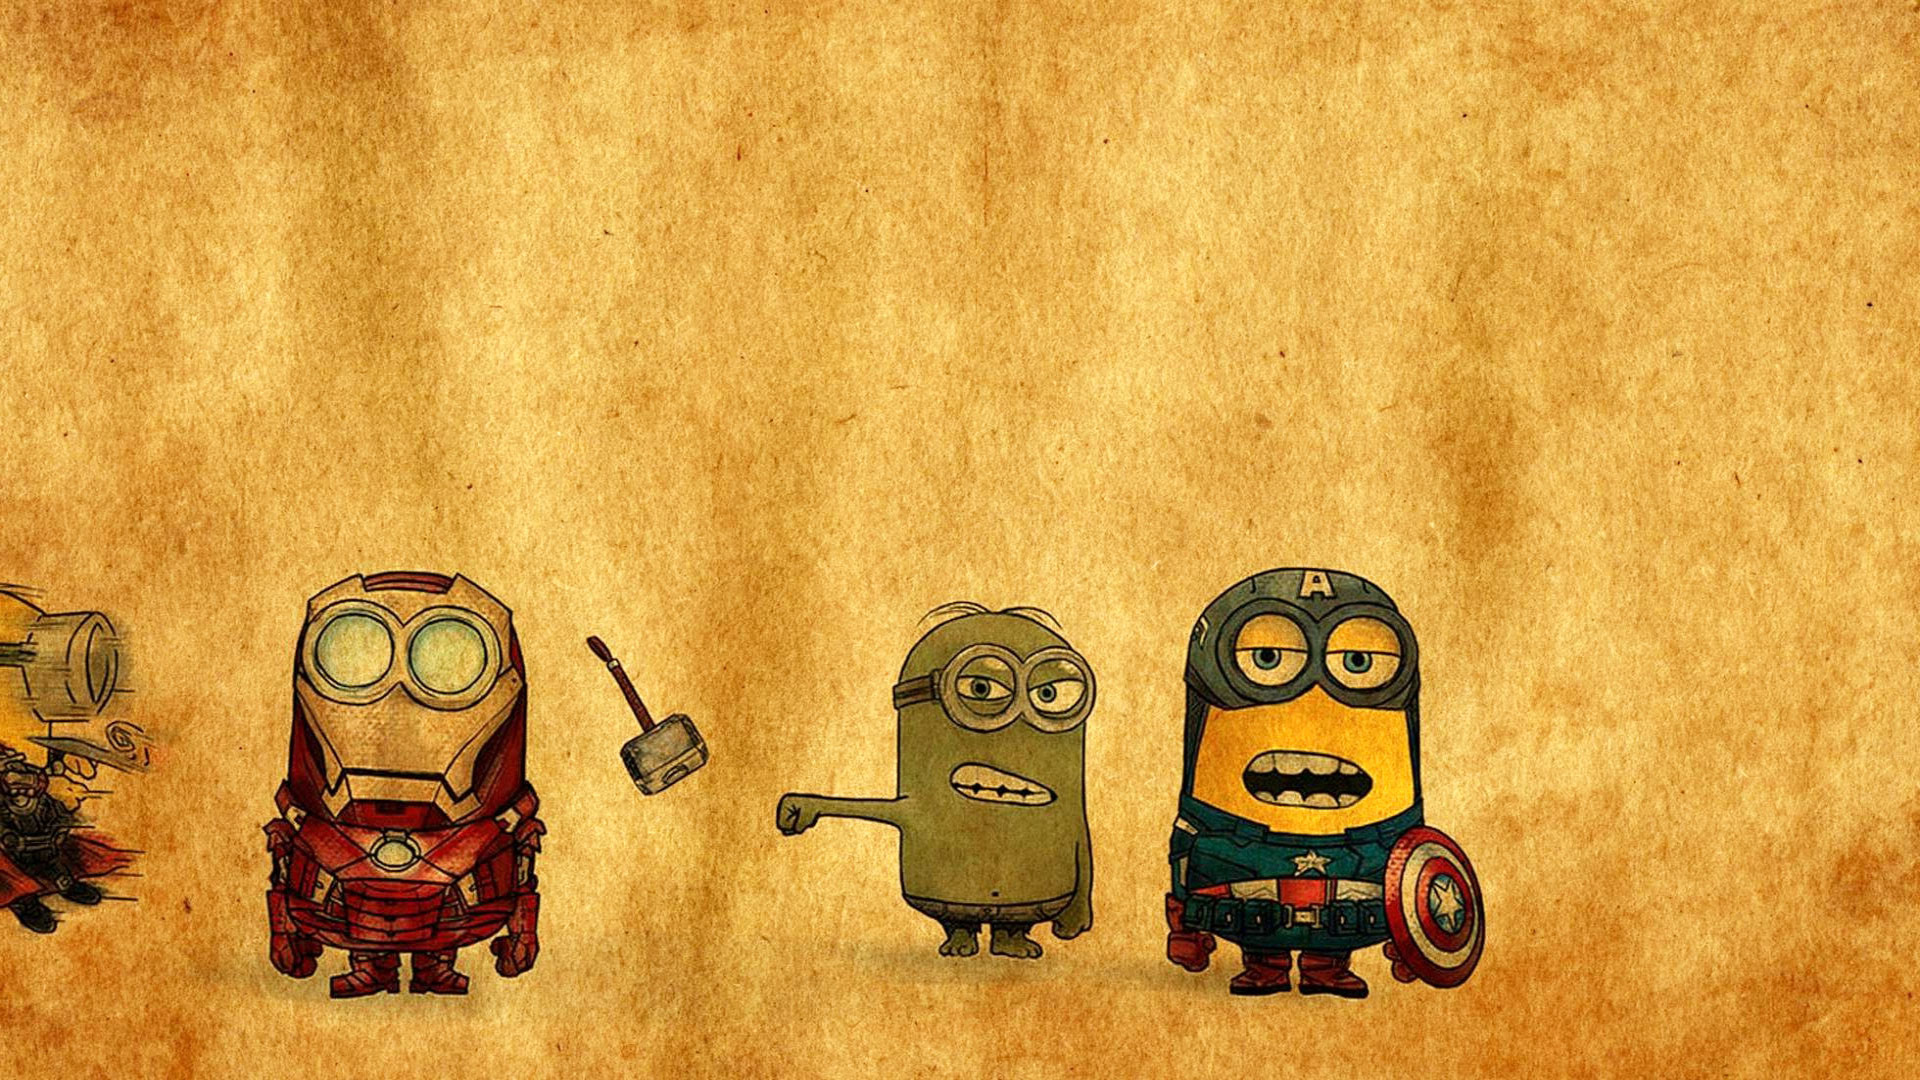 Res: 1920x1080, Minions -Avengers-Drawing-exclusive-HD-for-Desktop-background-Iphone-Ipad-and-and- wallpaper-wp009448